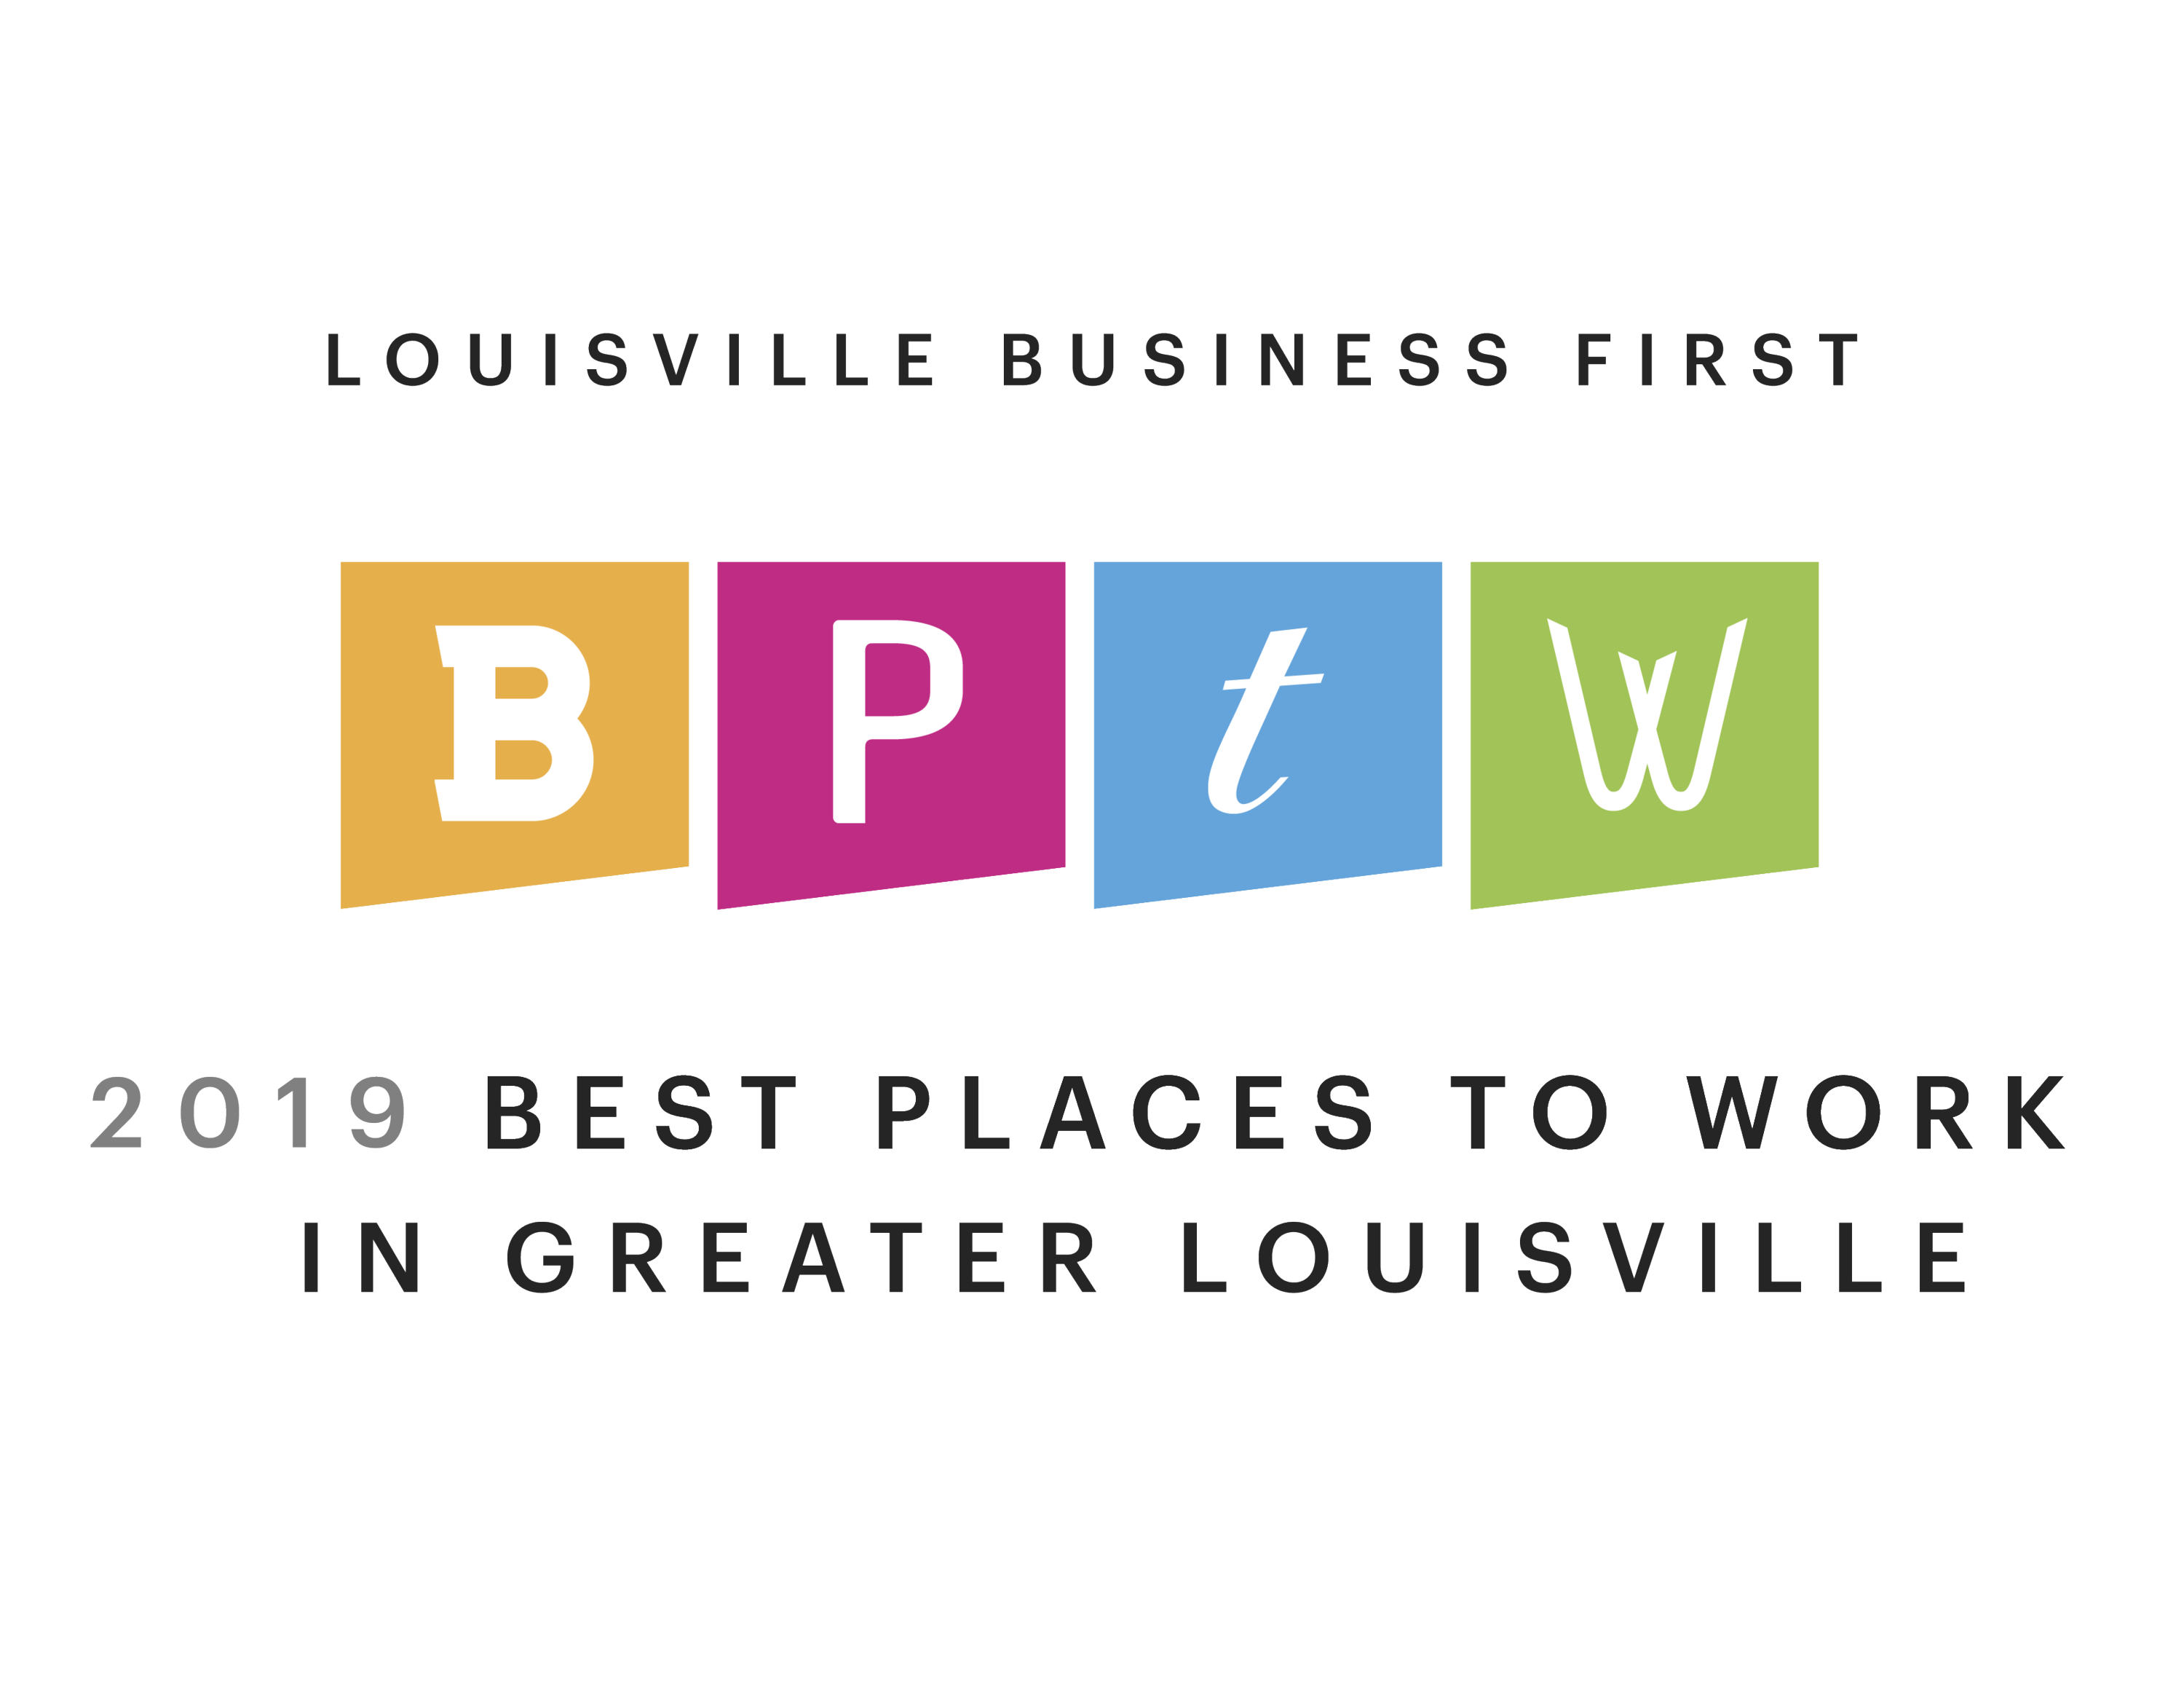 Kentucky Farm Bureau Insurance is honored to be recognized as one of the Best Places to Work in Greater Louisville by Louisville Business First